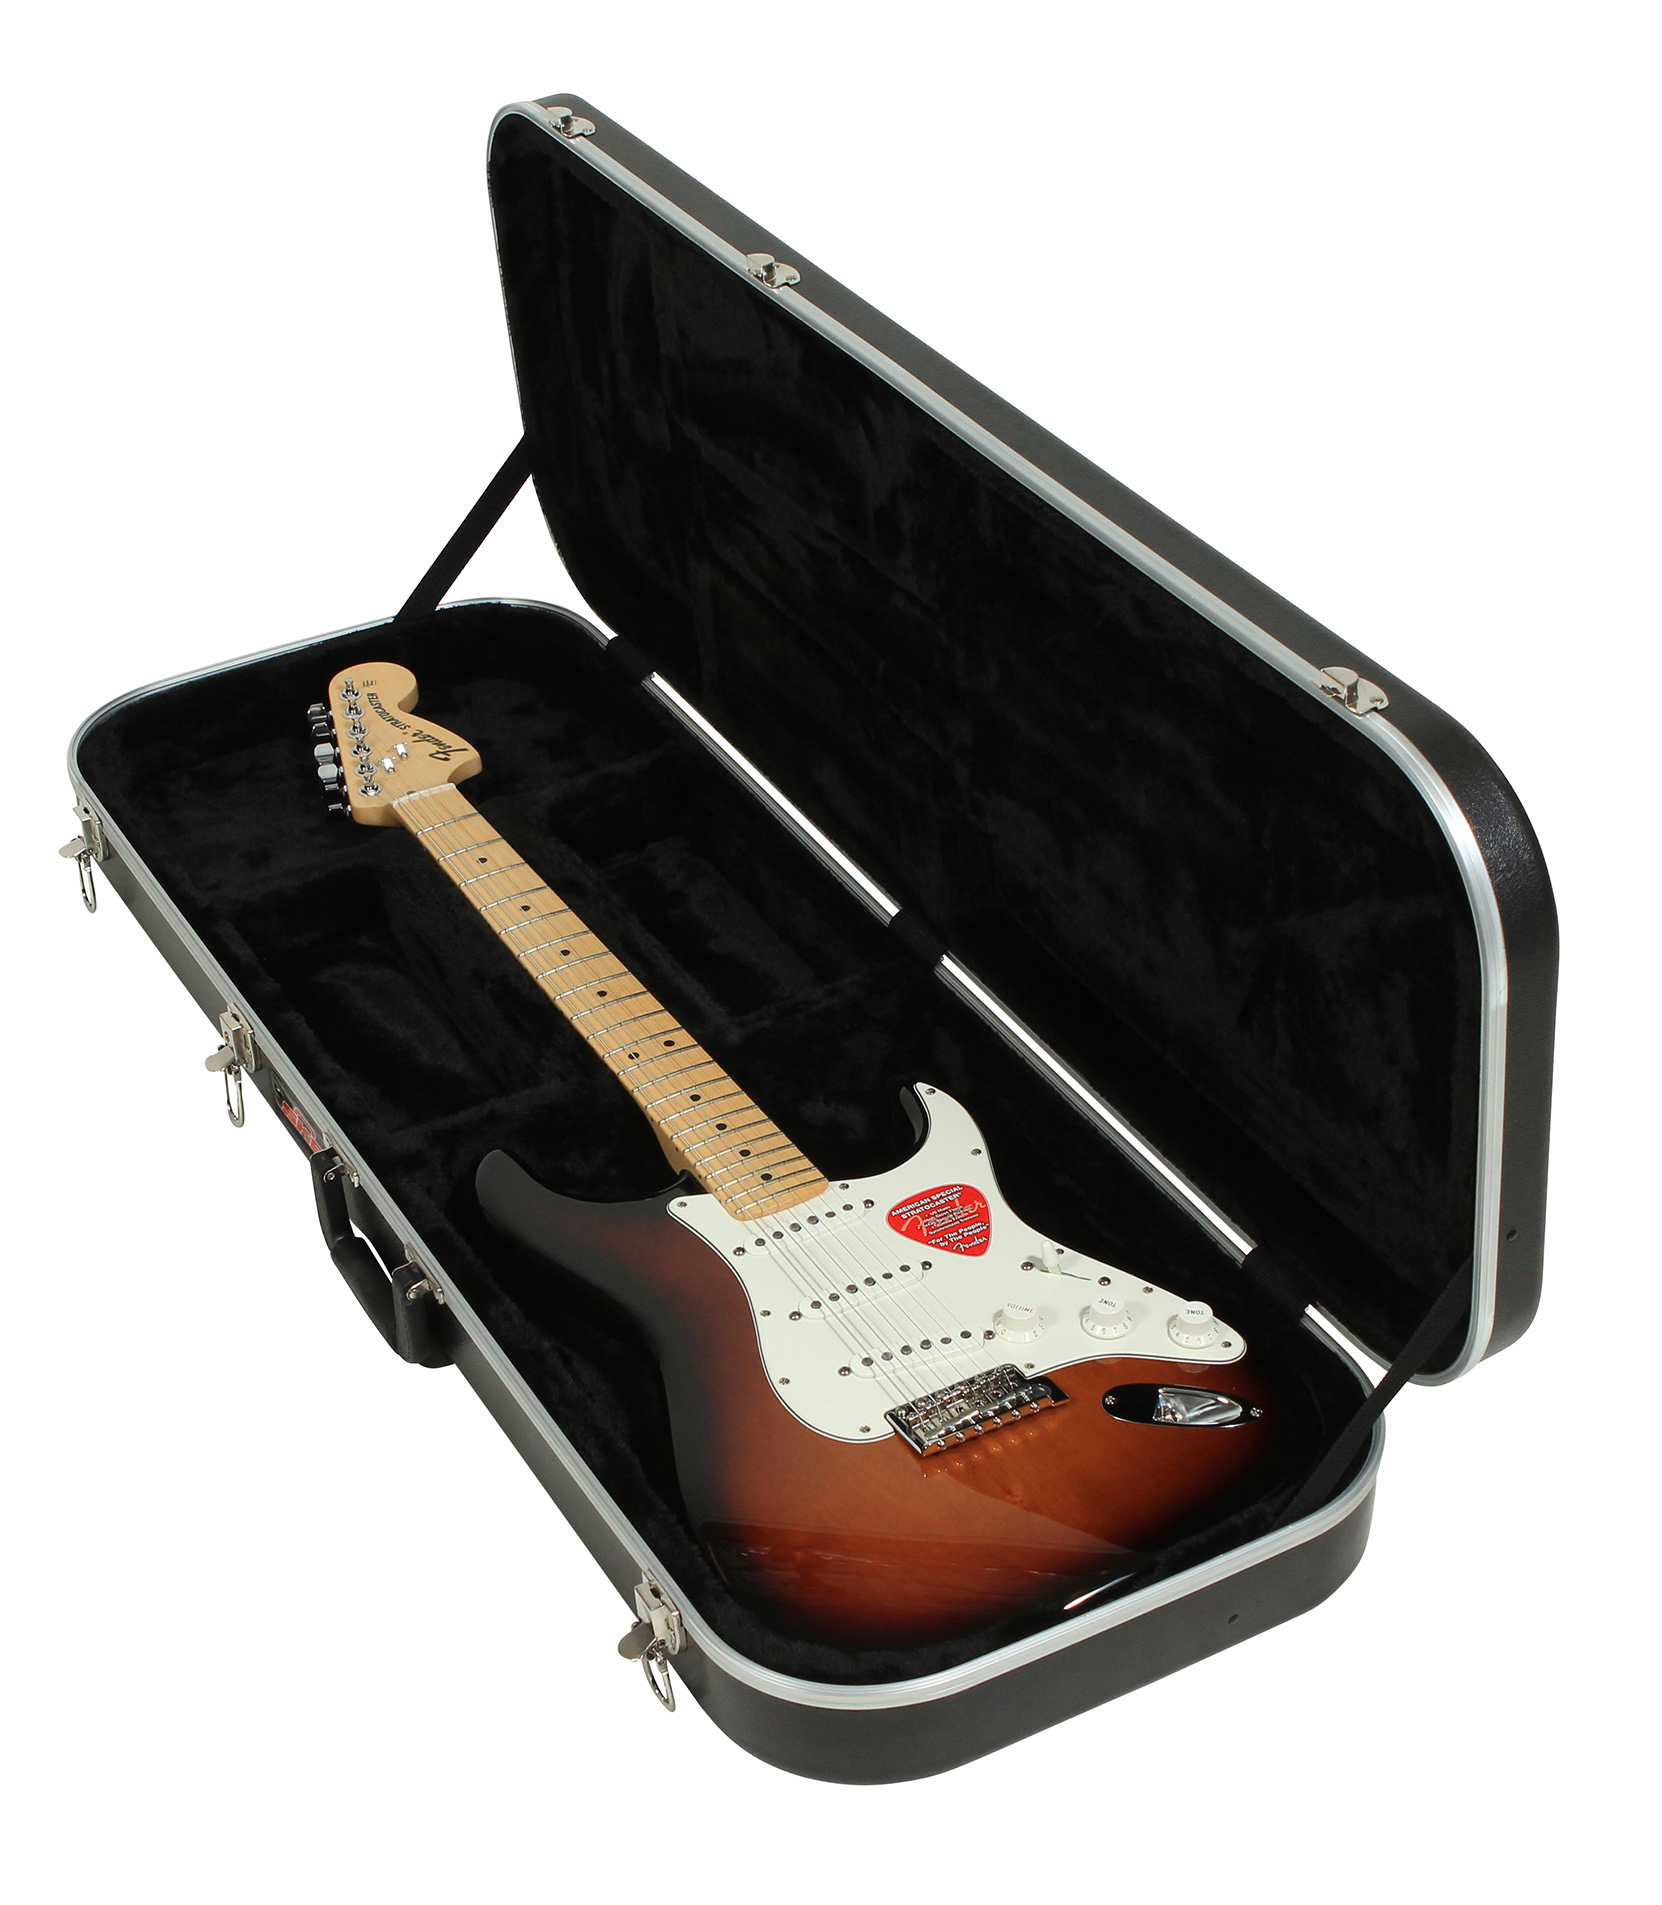 Melody House Musical Instruments Store - 1SKB 6 Electric Guitar Open Pocket